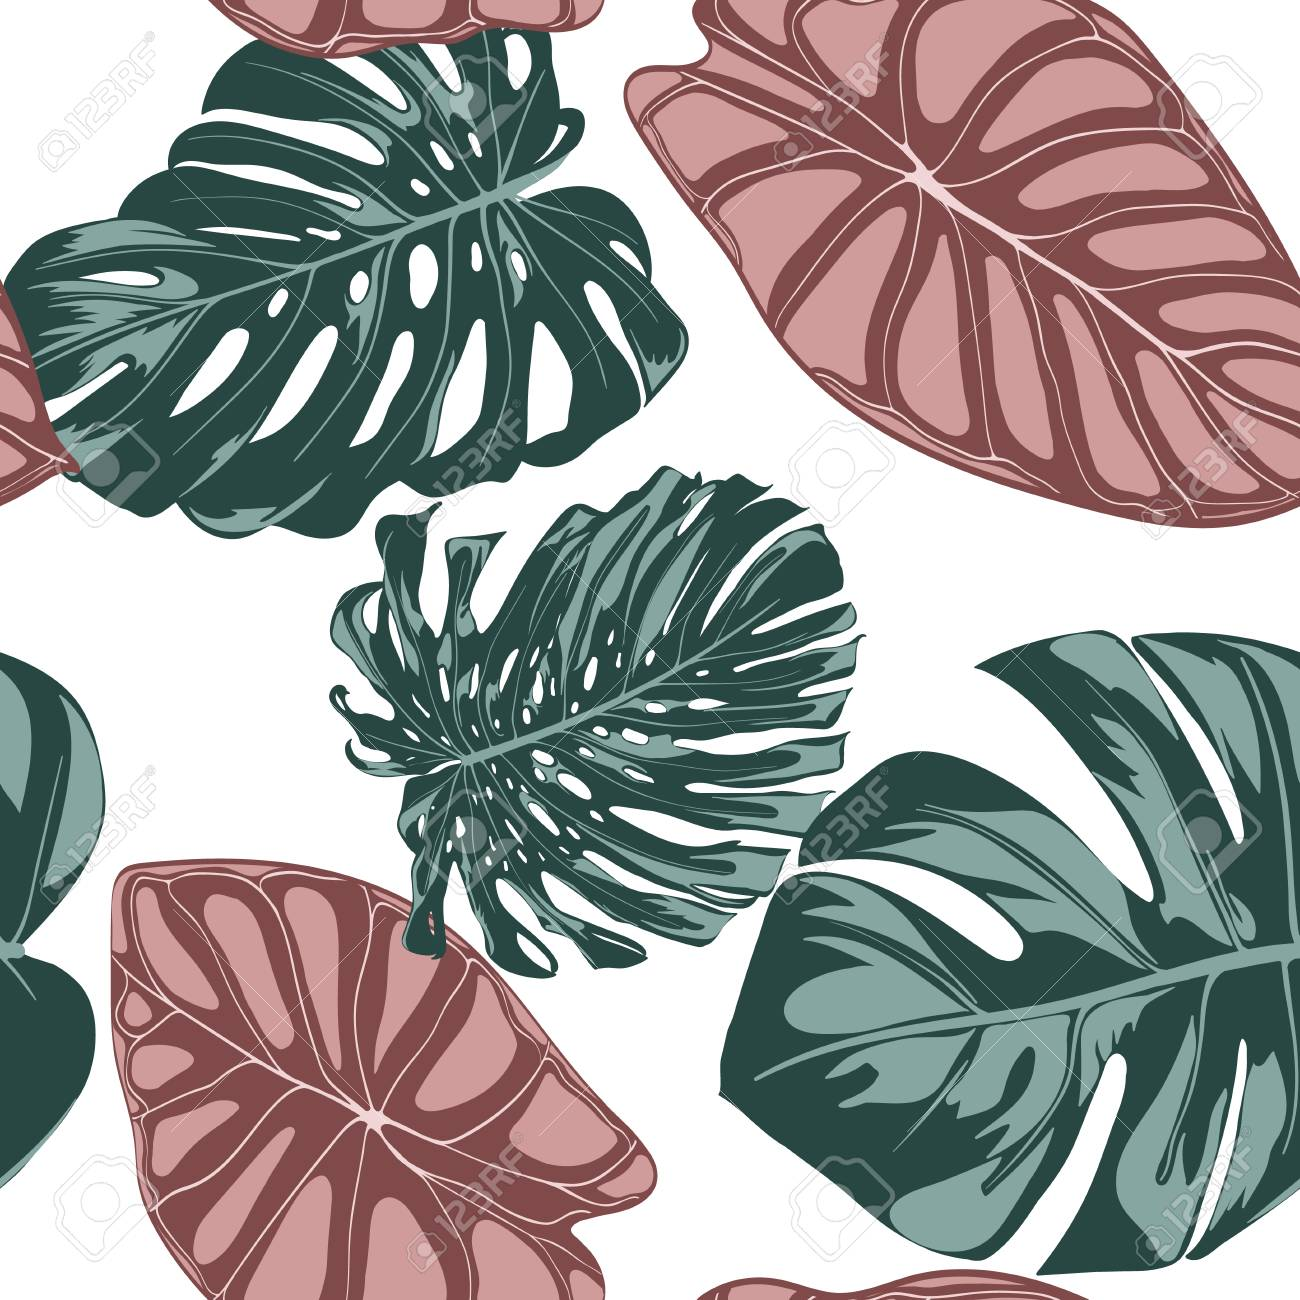 Tropical Jungle Leaves Vector Seamless Pattern Philodendron Royalty Free Cliparts Vectors And Stock Illustration Image 112316656 Check out this fantastic collection of jungle leaves wallpapers, with 51 jungle leaves background images for your a collection of the top 51 jungle leaves wallpapers and backgrounds available for download for free. tropical jungle leaves vector seamless pattern philodendron